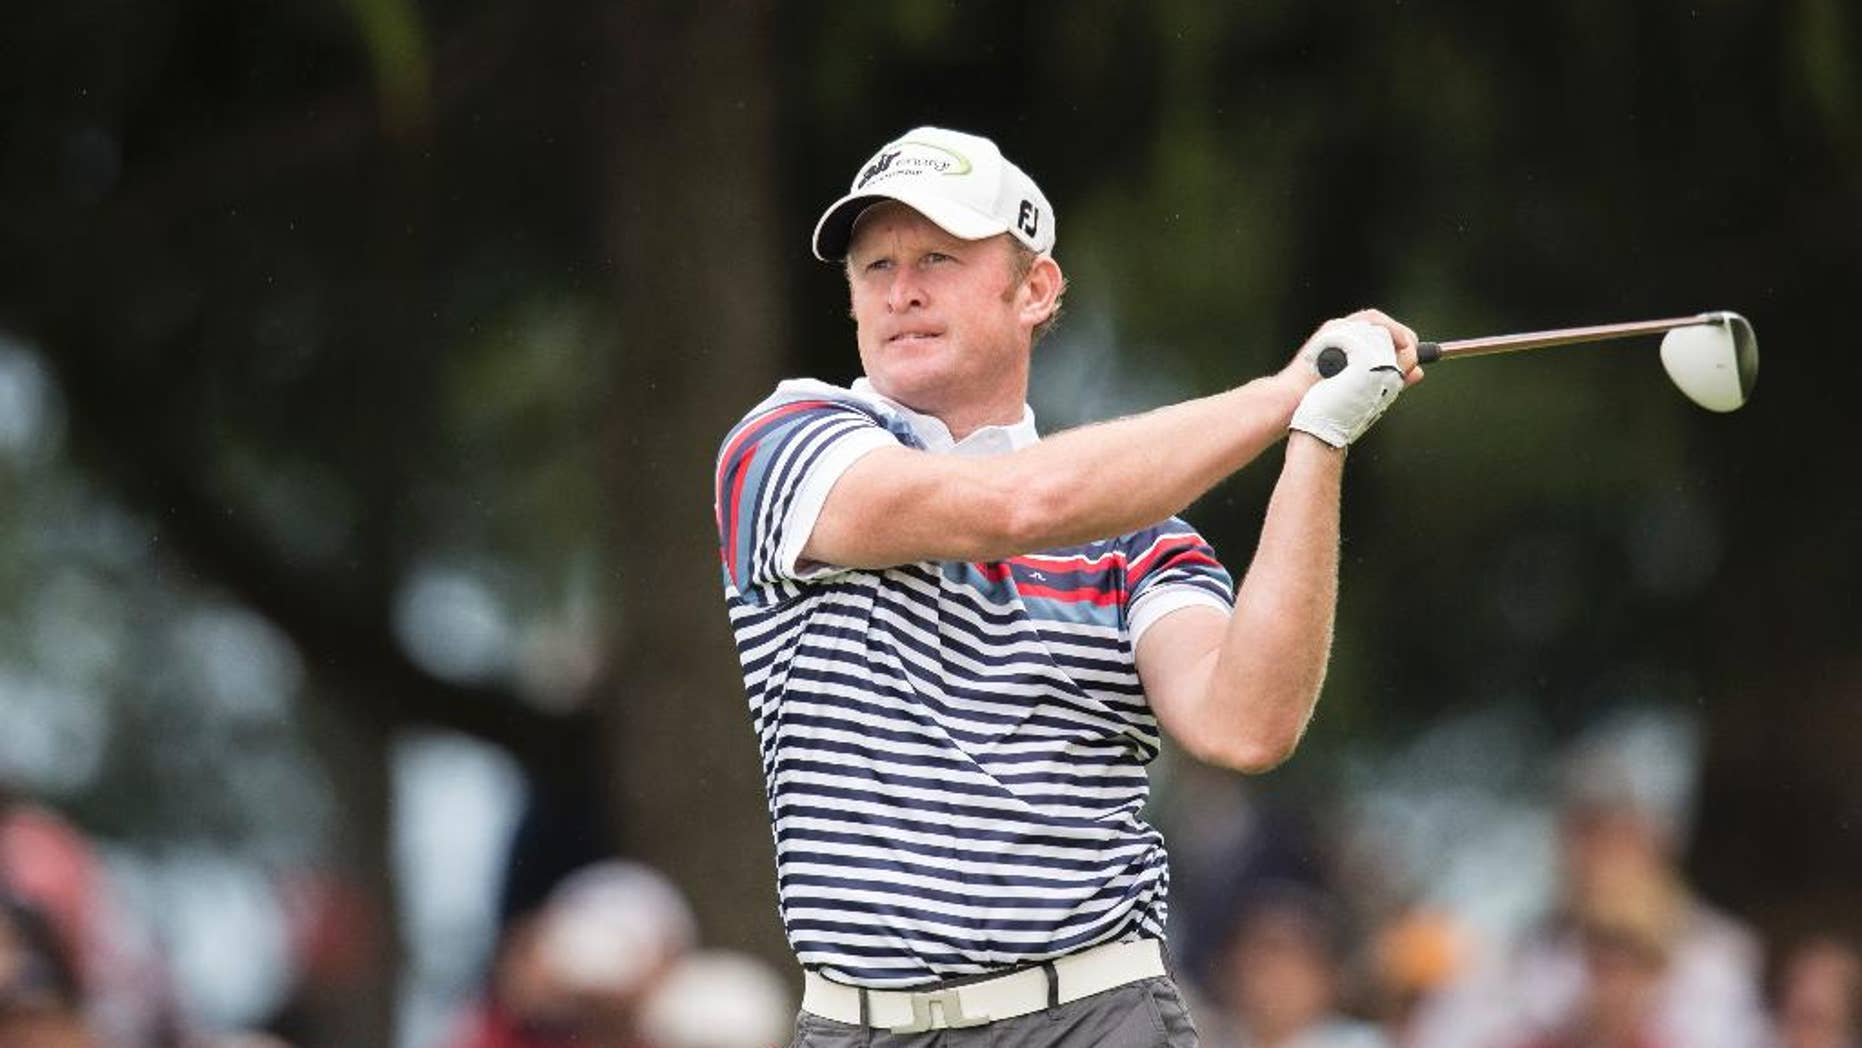 Jamie Donaldson of Wales tees off at hole 9 during the second round of the Omega European Masters Golf Tournament in Crans-Montana, Switzerland, Friday, September 5, 2014.  (AP Photo/Keystone/Ennio Leanza)